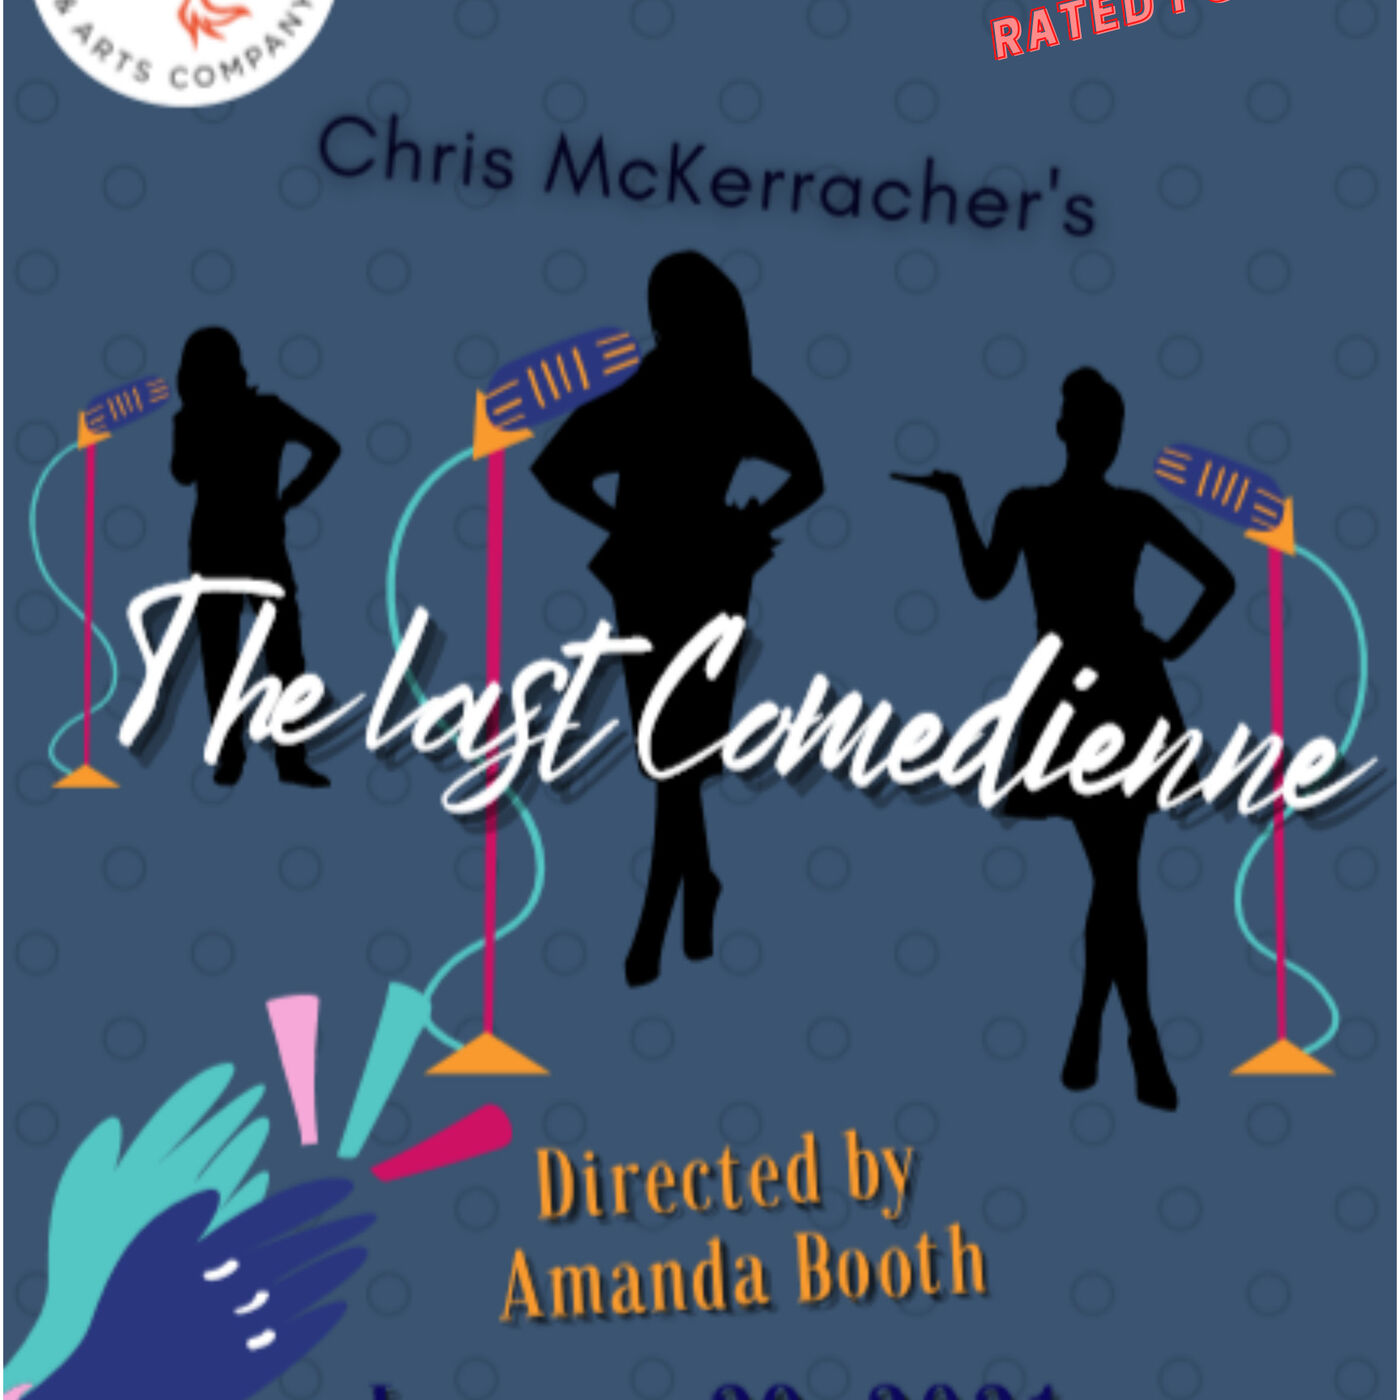 The Last Comedienne